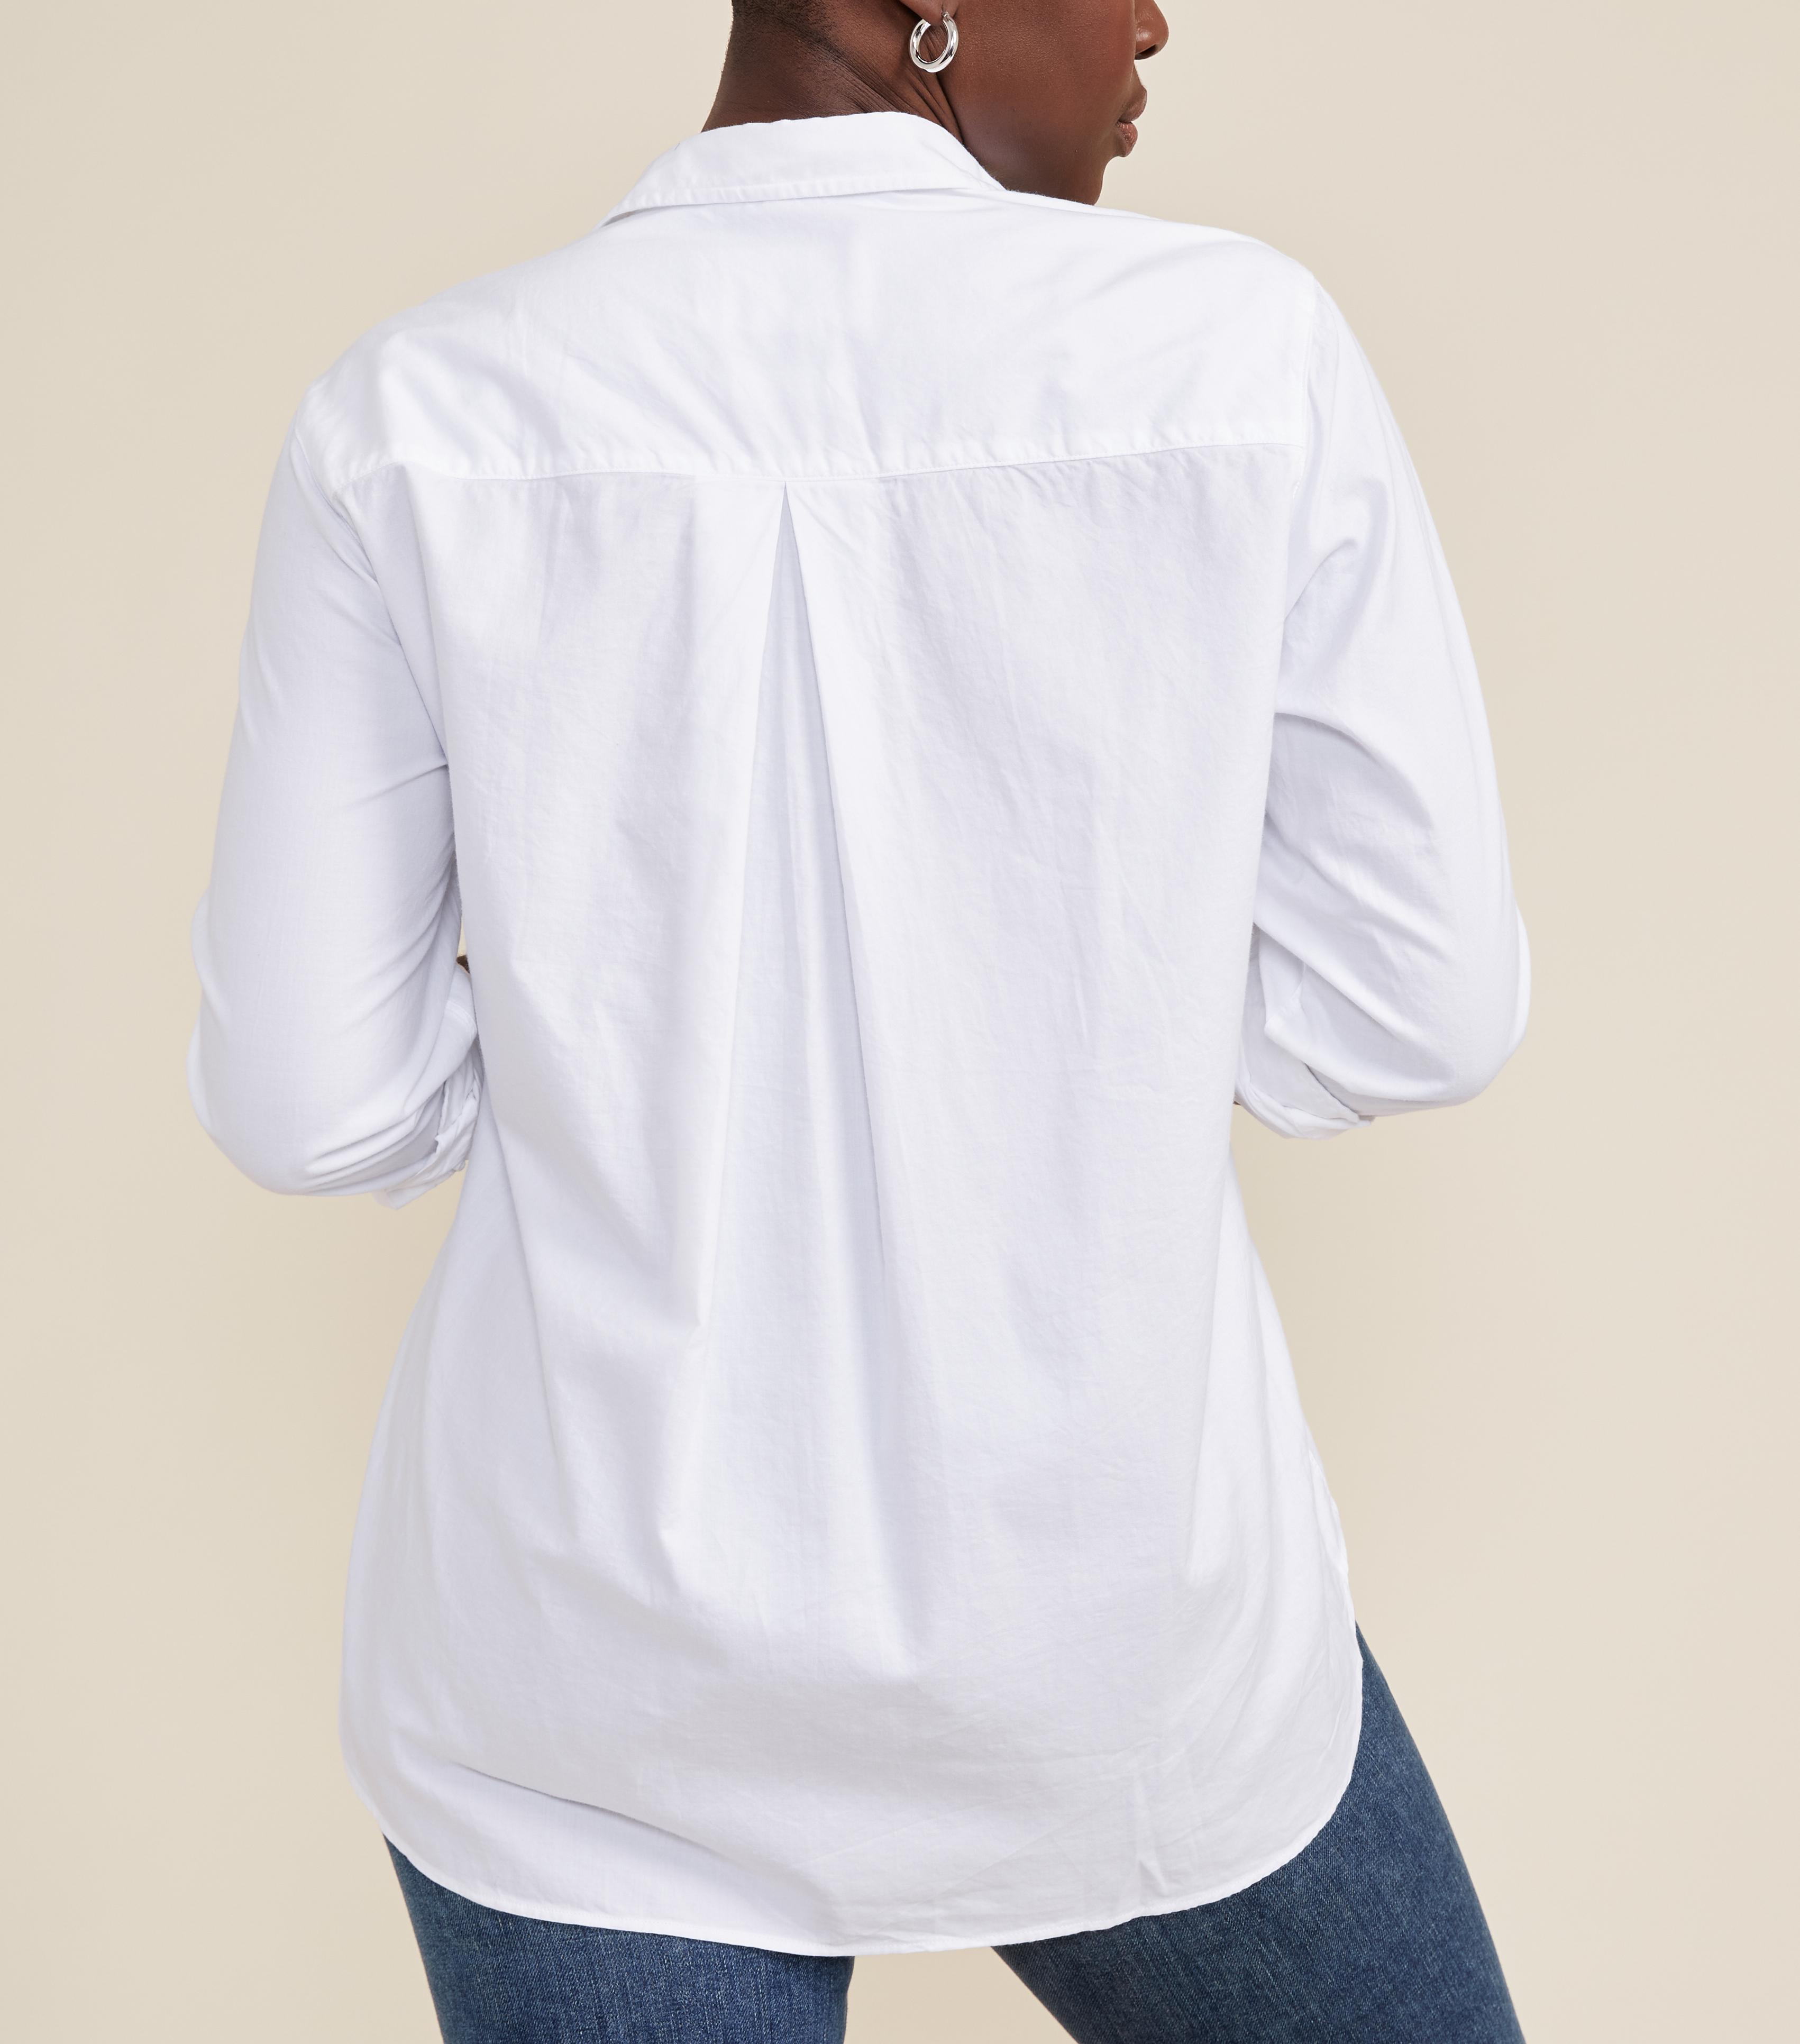 The Hero Button-Up Shirt Kind, Brushed Cotton 2